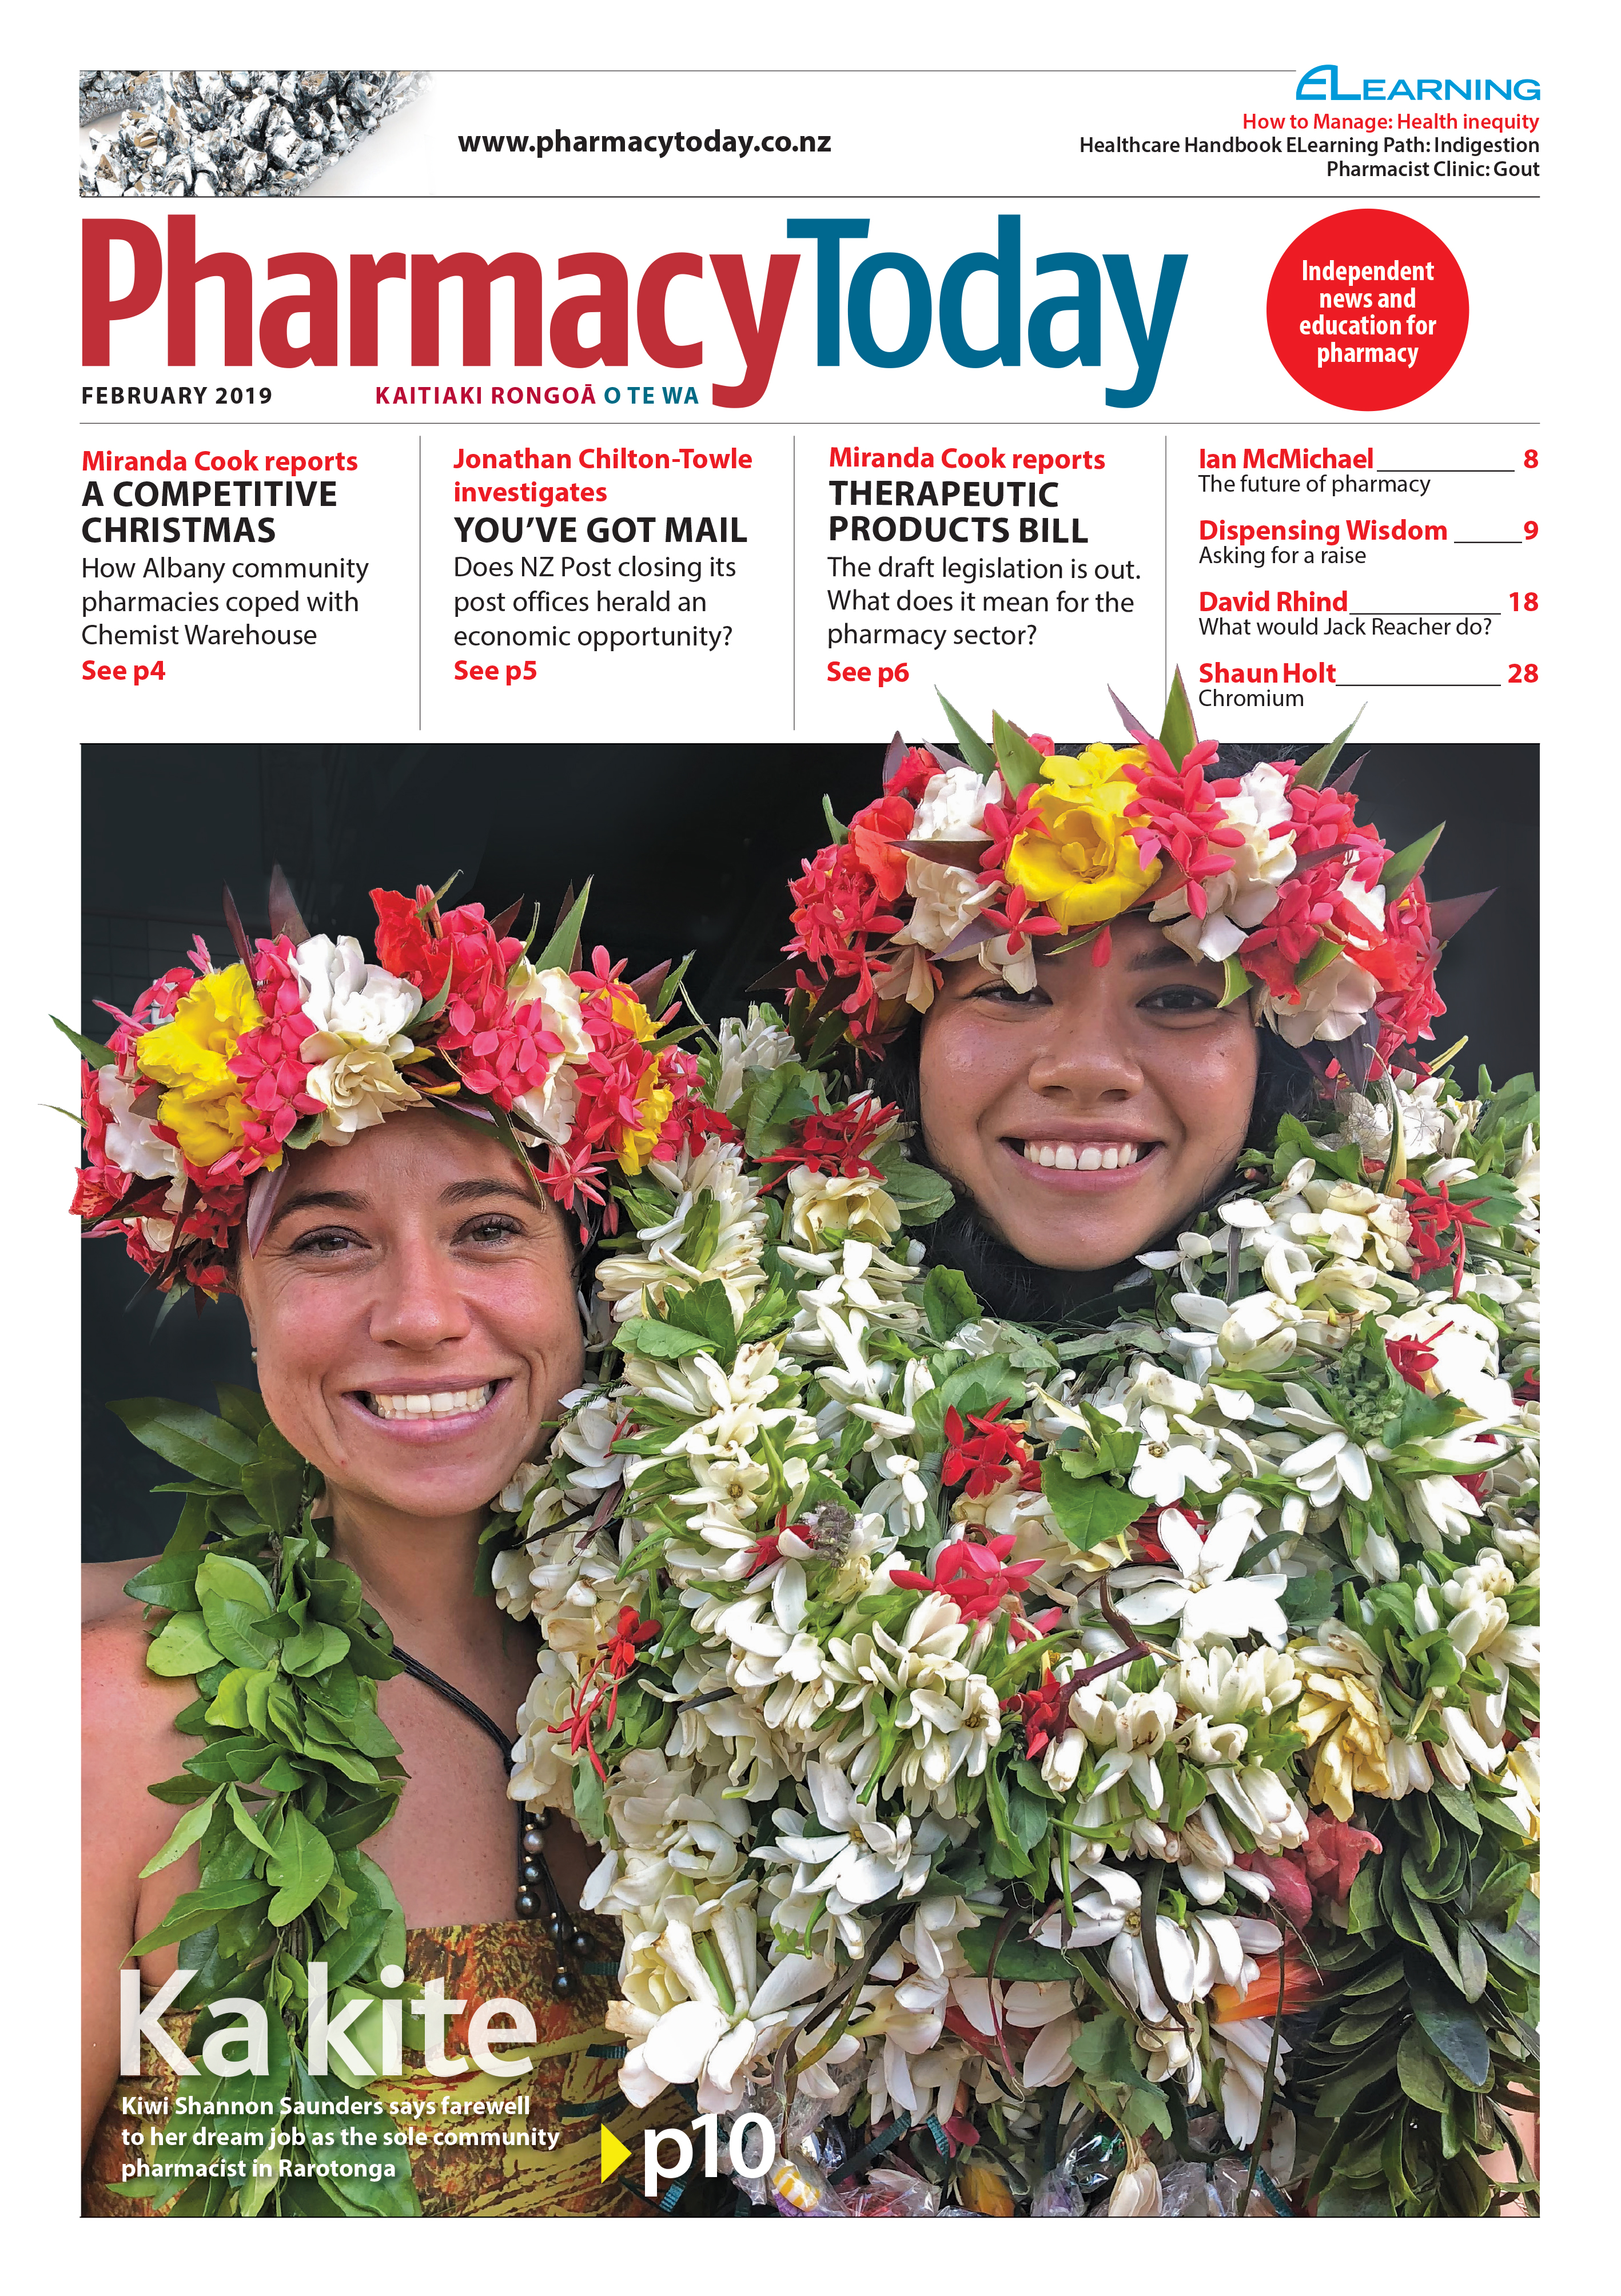 Pharmacy Today February 2019 cover